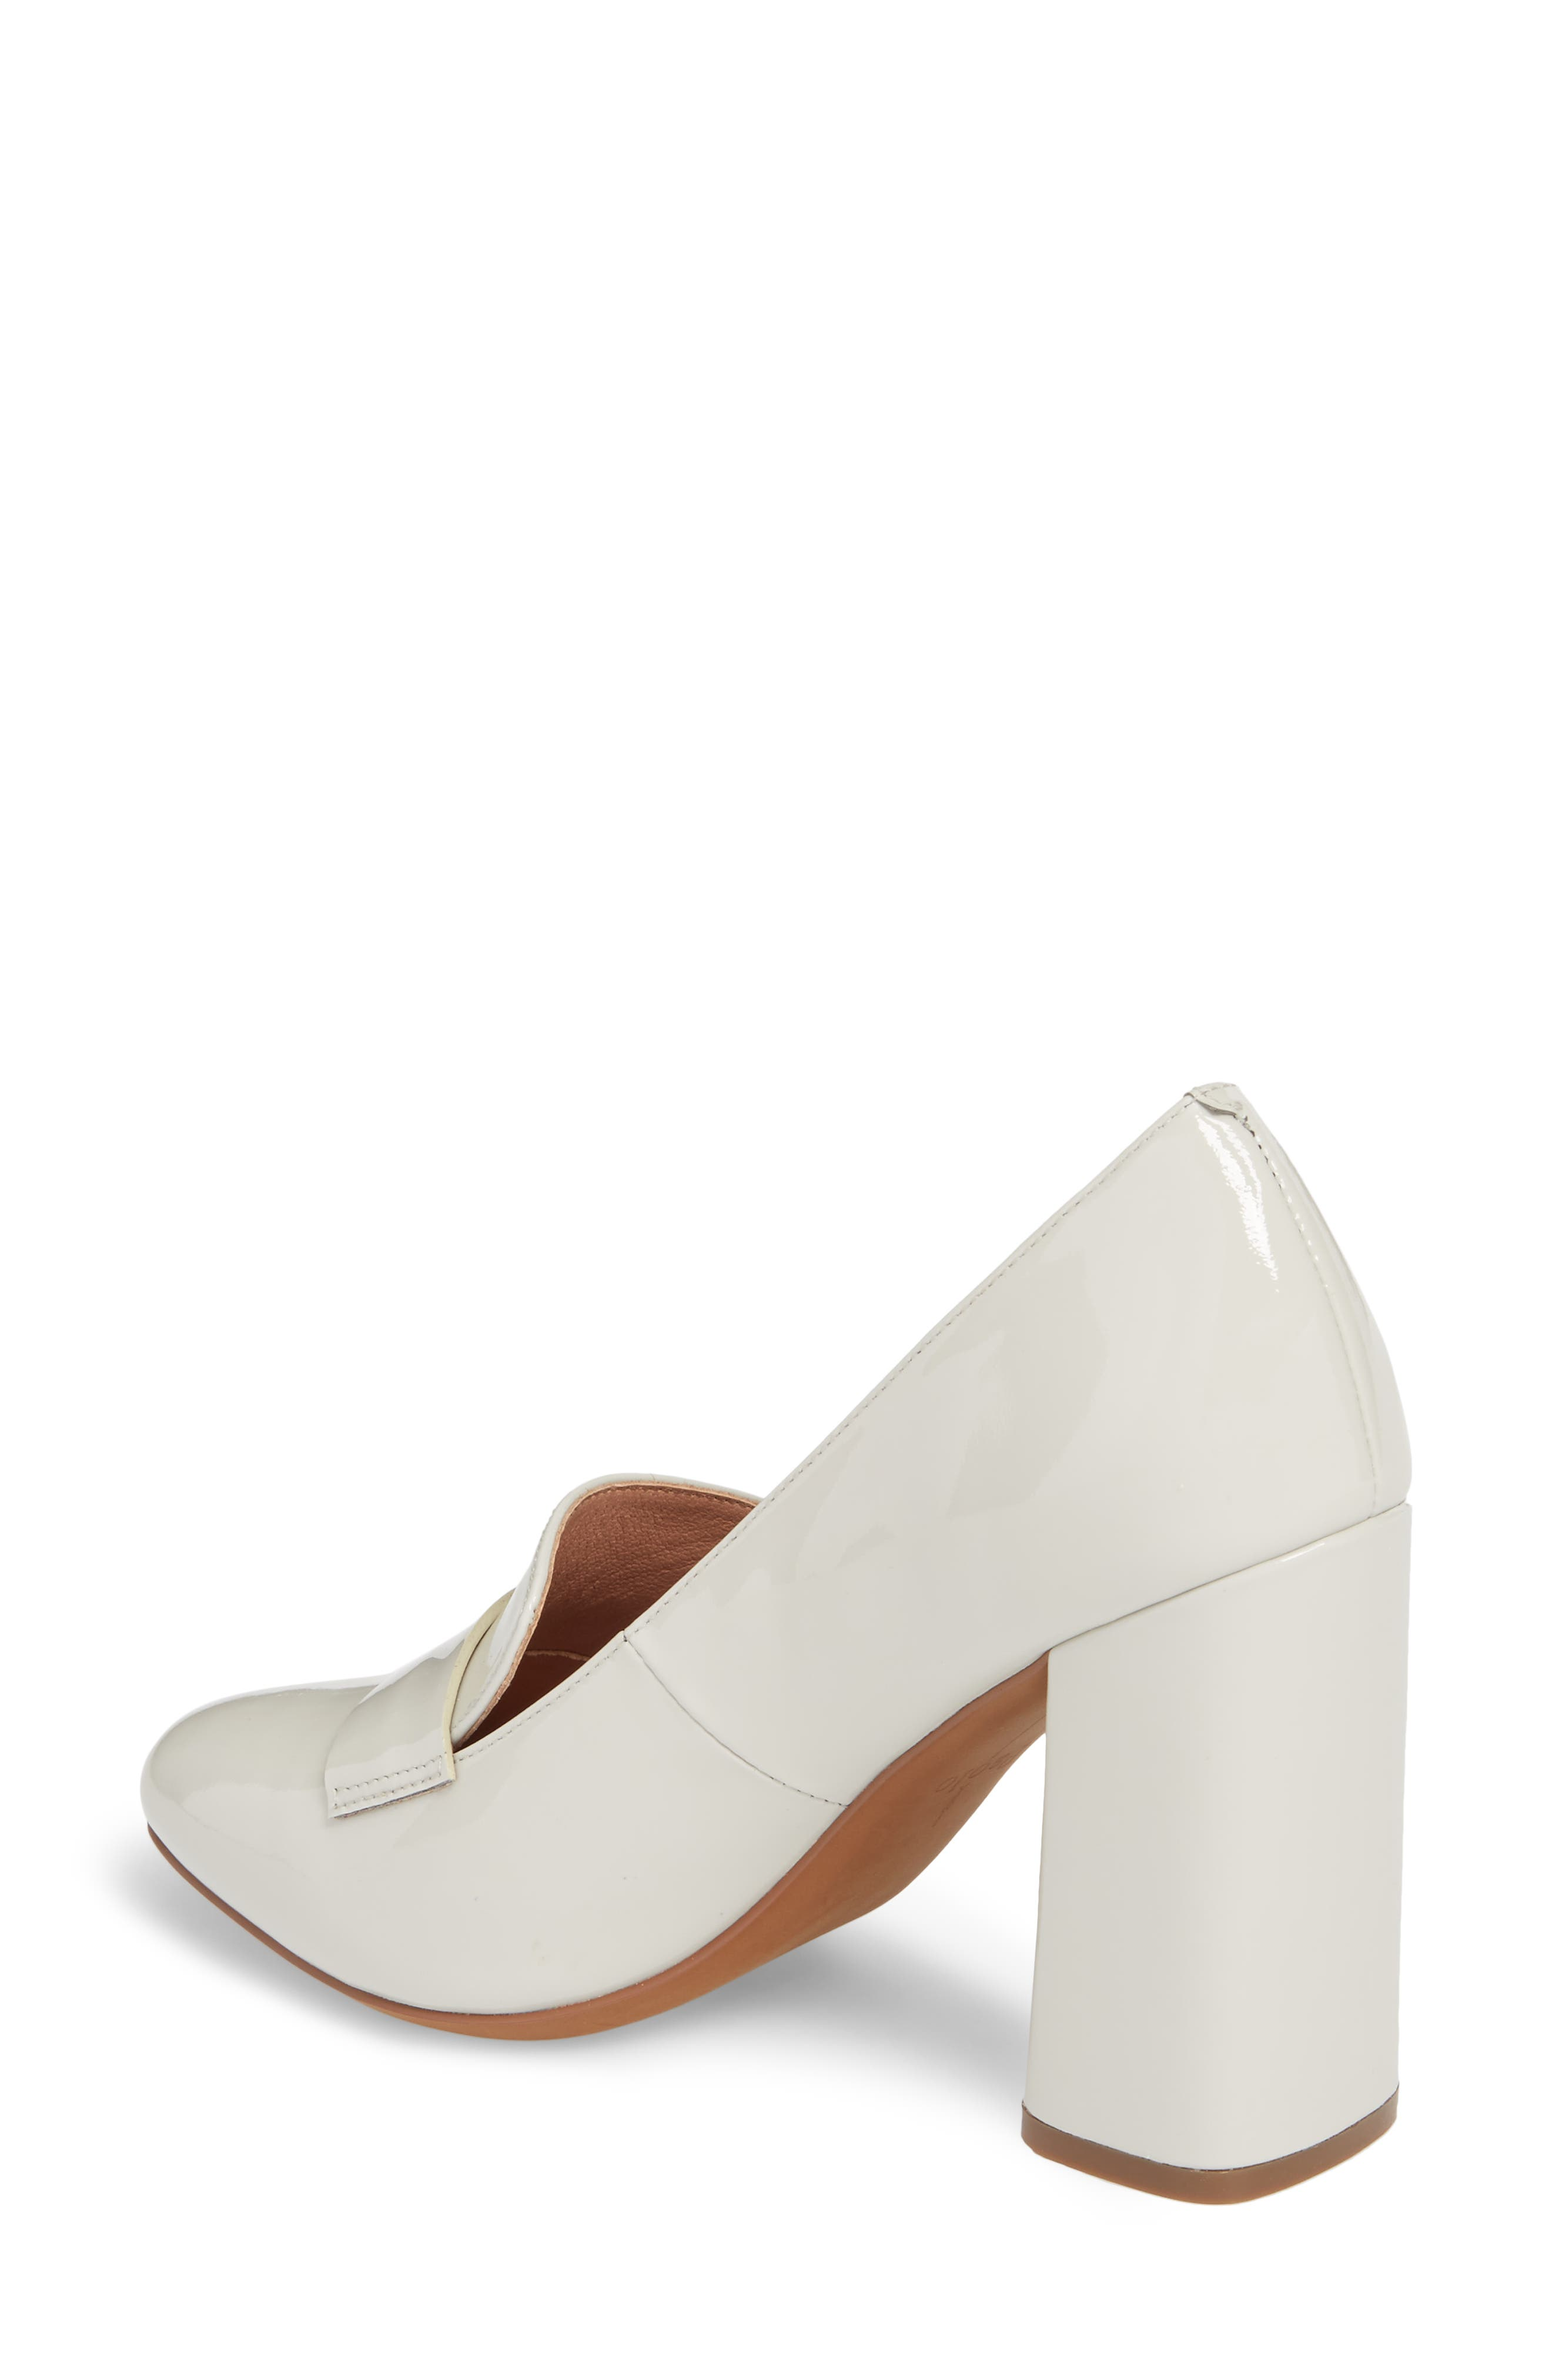 f2a4c6beb6c Women s Linea Paolo Shoes Sale